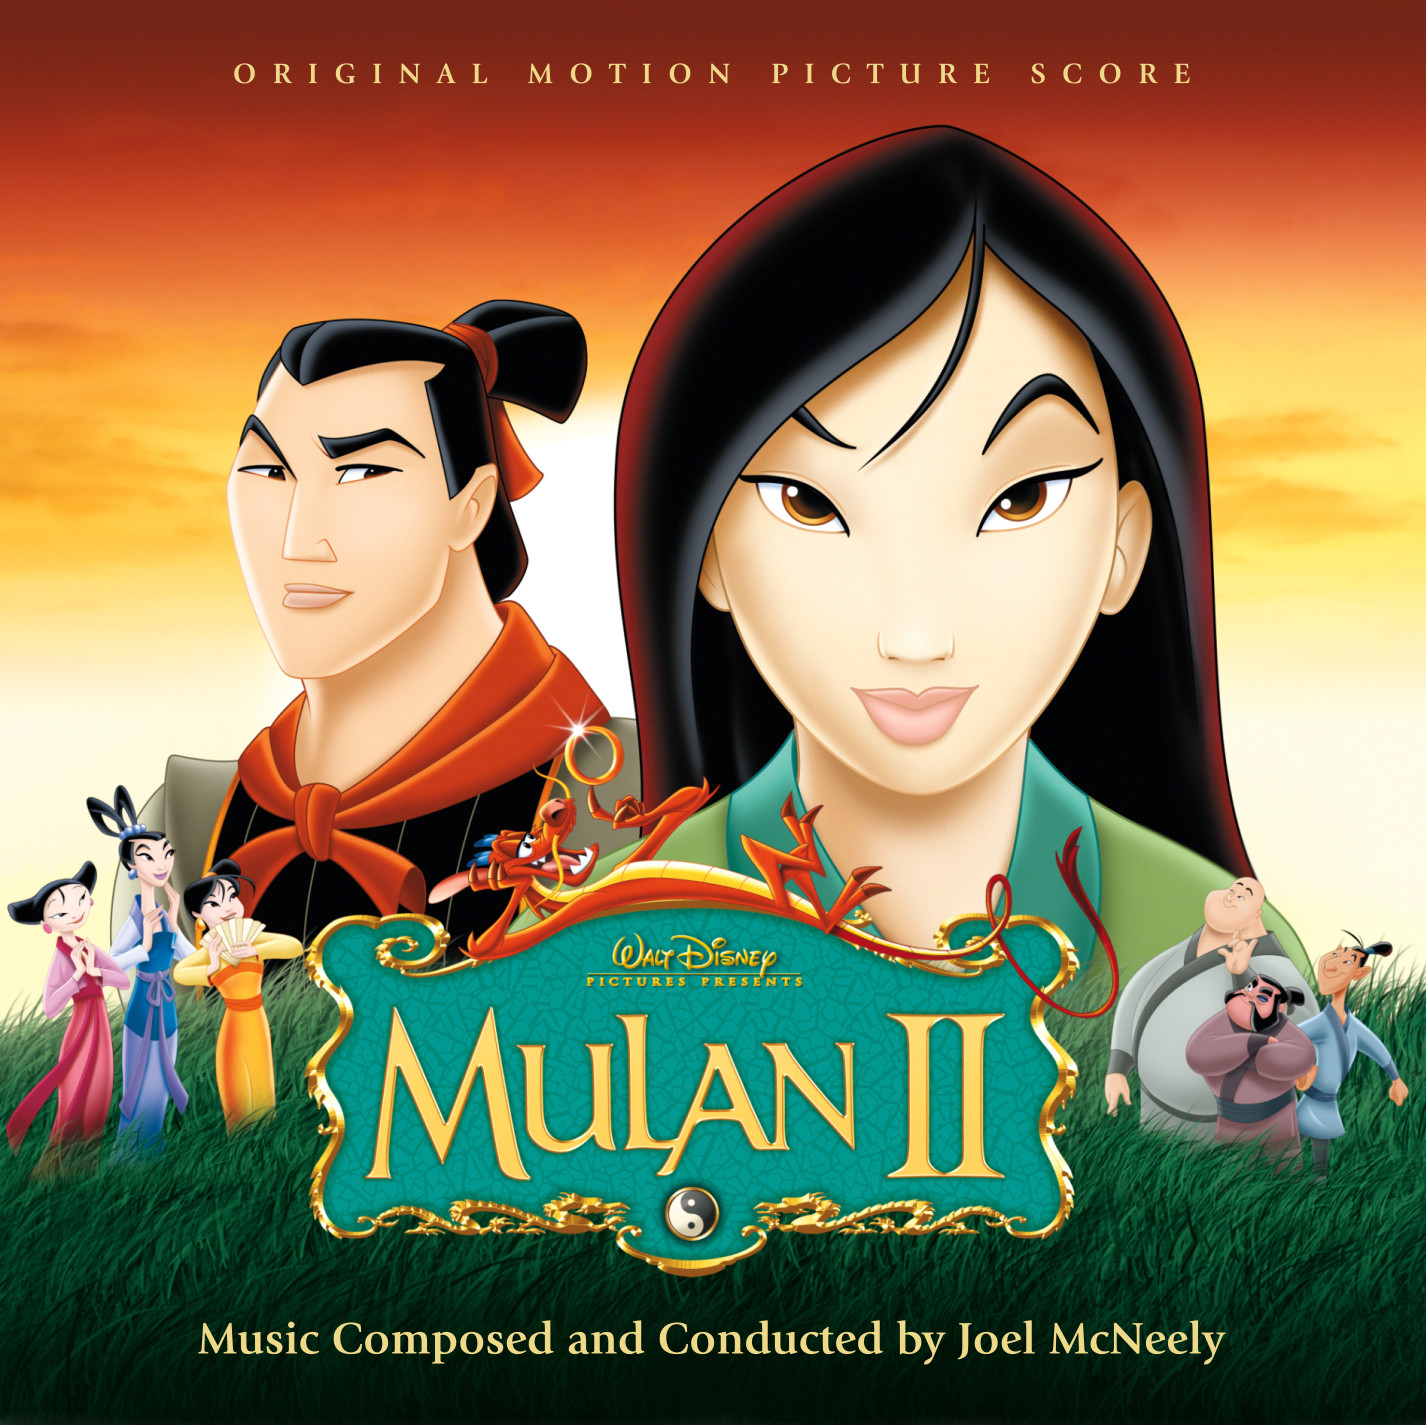 Mulan II Backgrounds, Compatible - PC, Mobile, Gadgets| 1426x1425 px